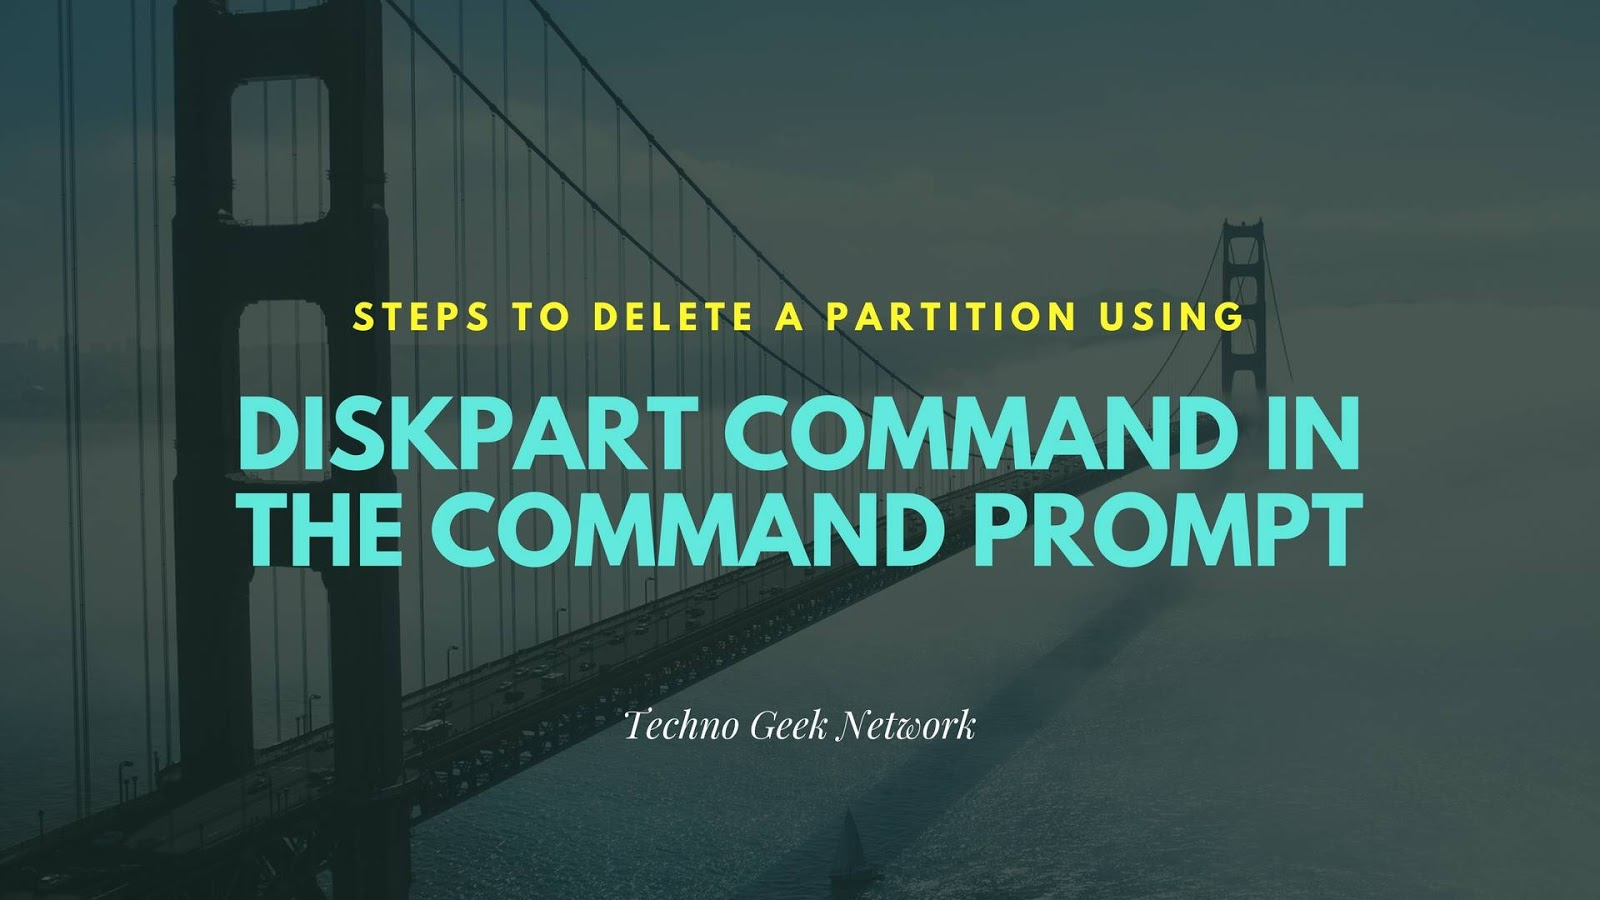 Steps to Delete a Partition Using Diskpart Command in the